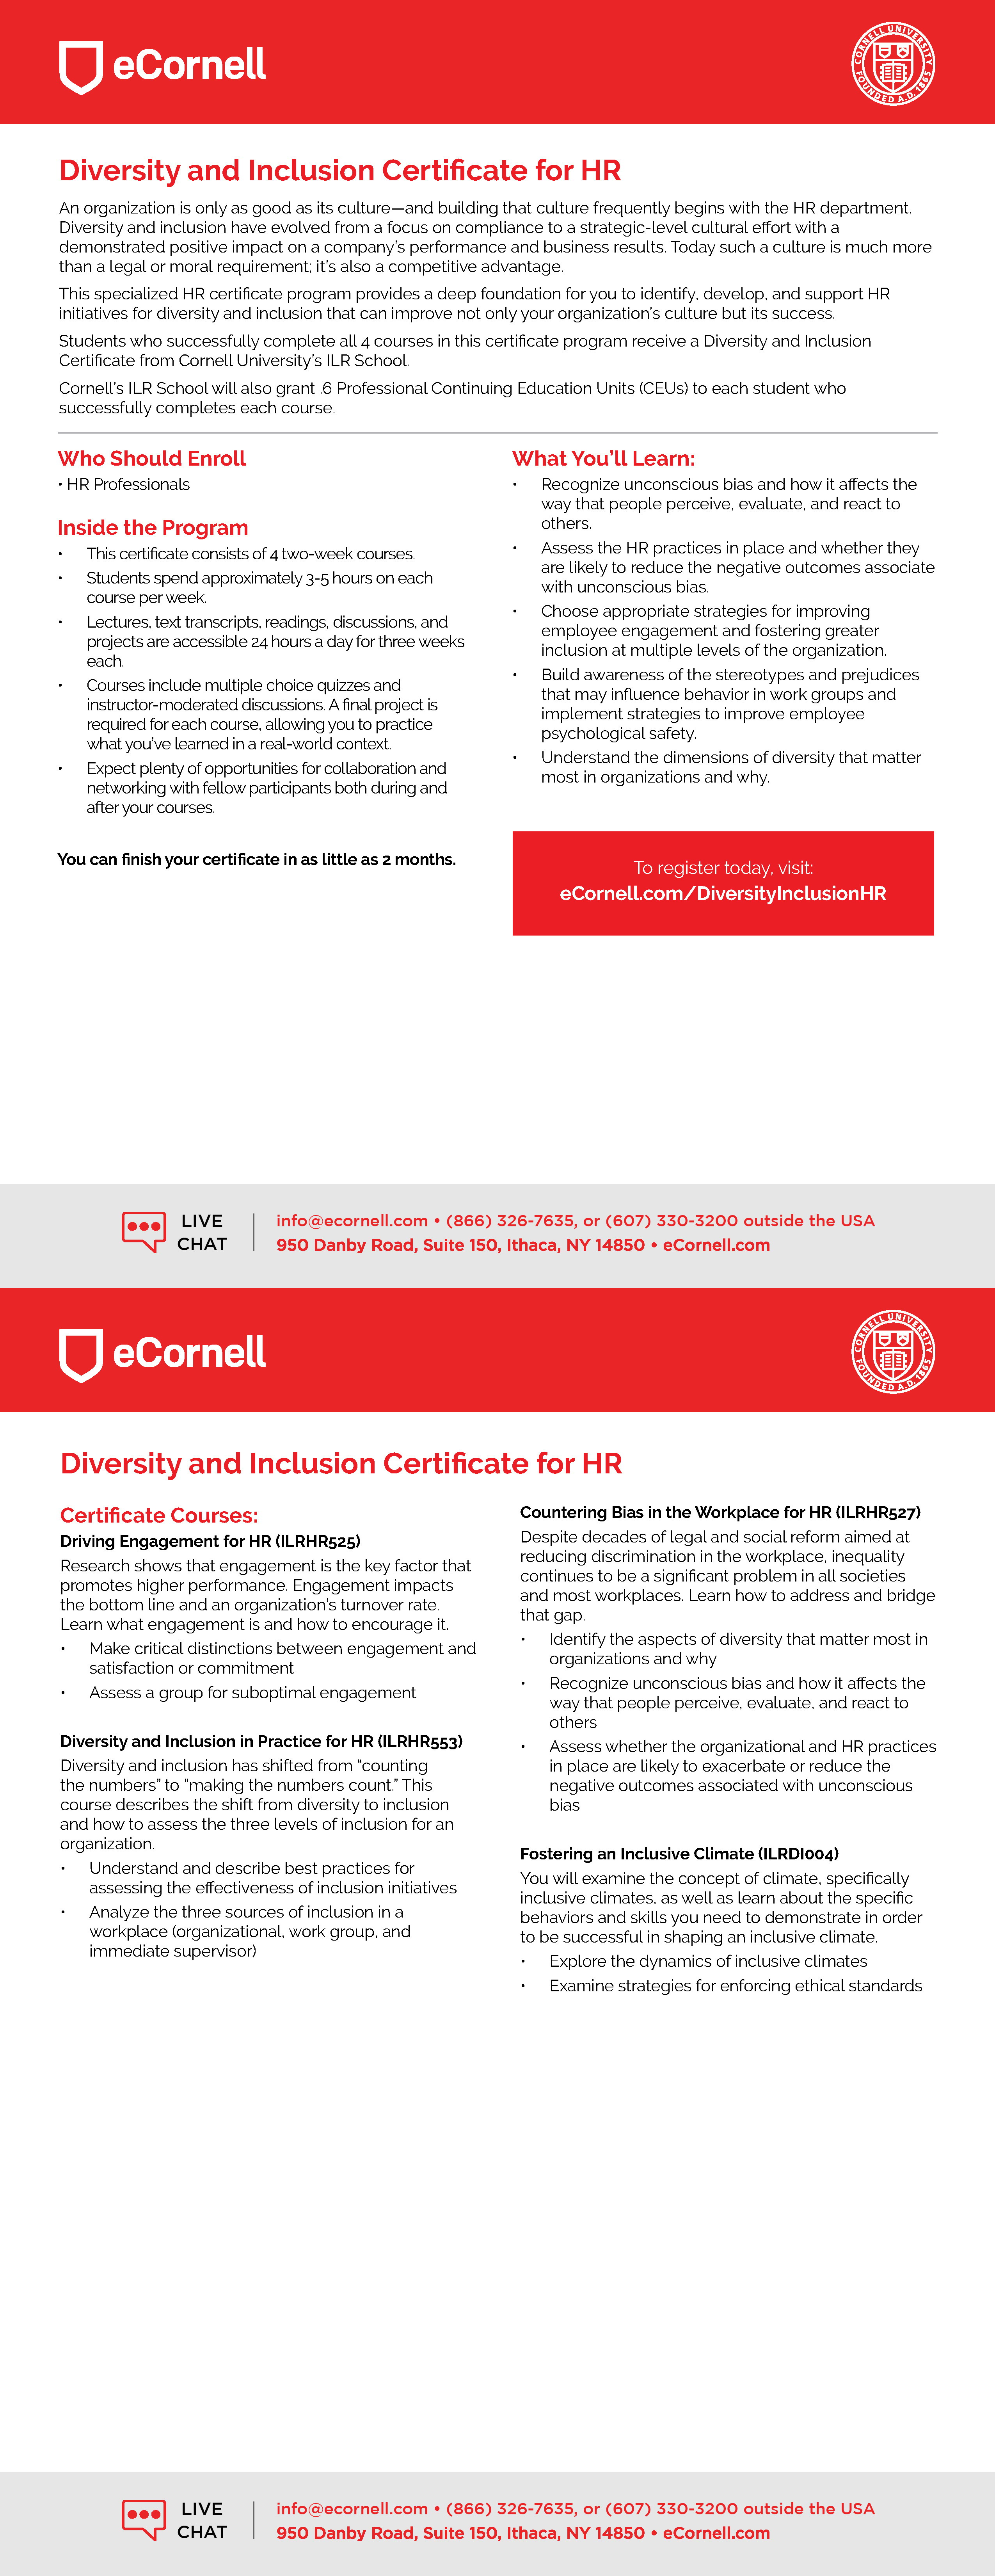 Diversity and Inclusion for HR Flyer